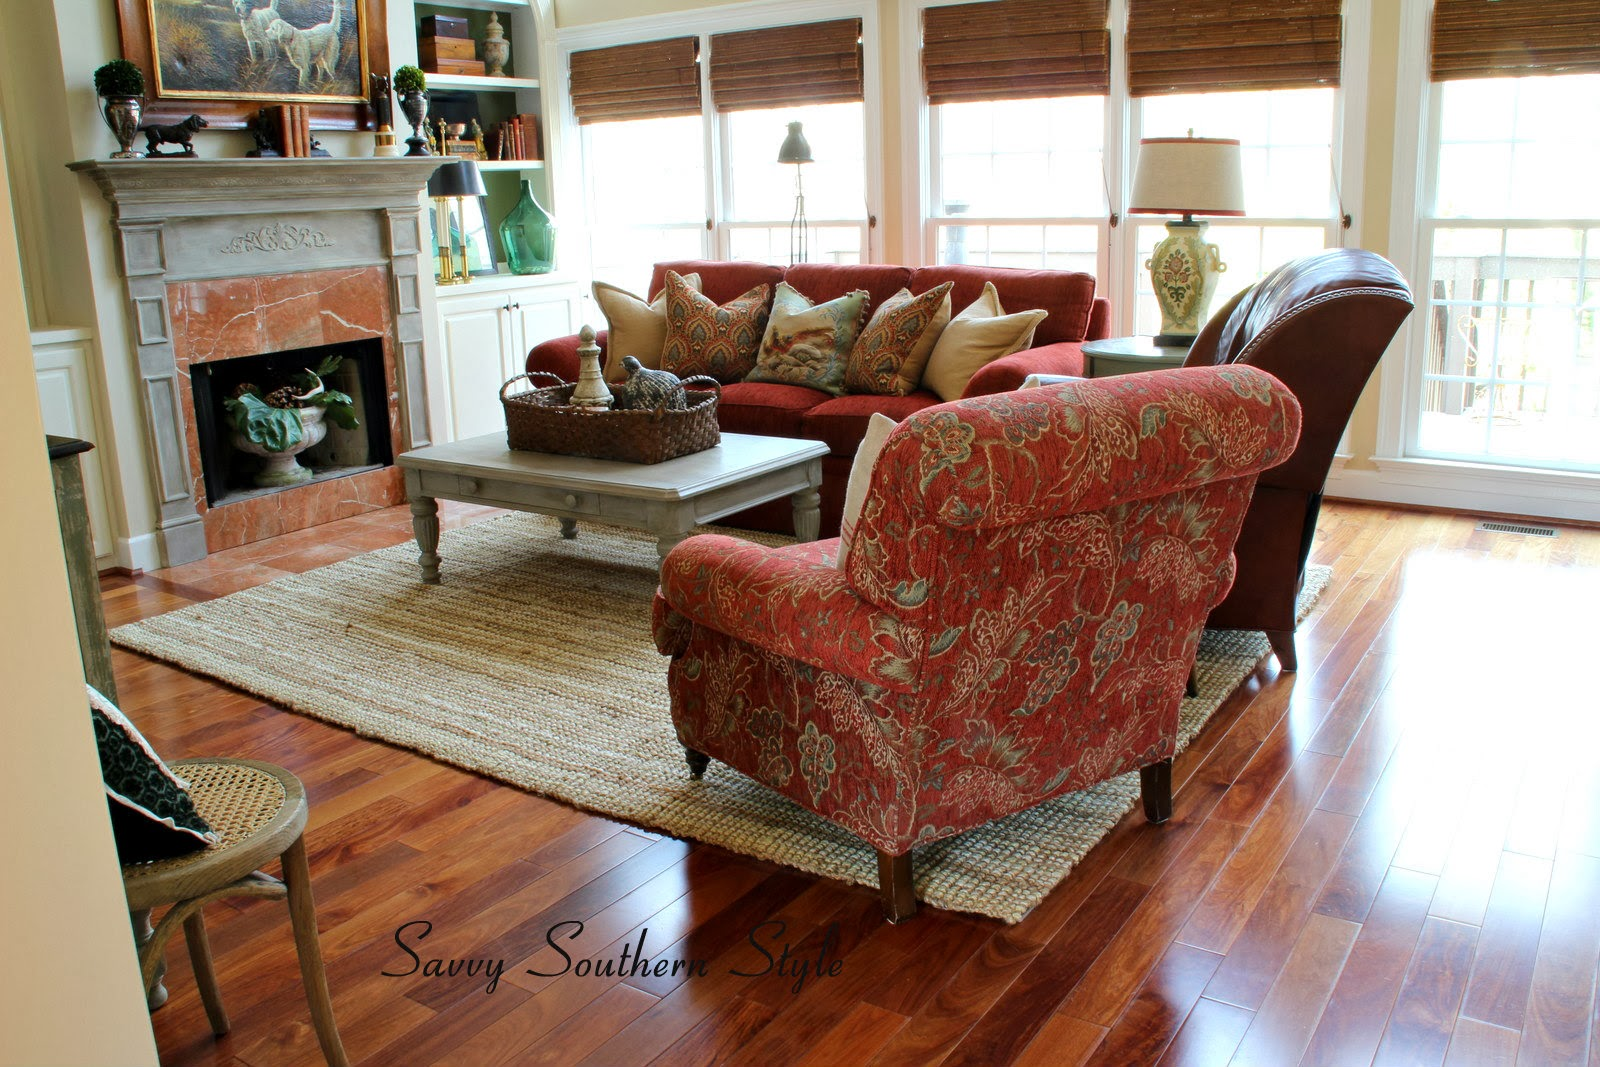 Jute Rug Living Room Savvy Southern Style I Think I Got It Right